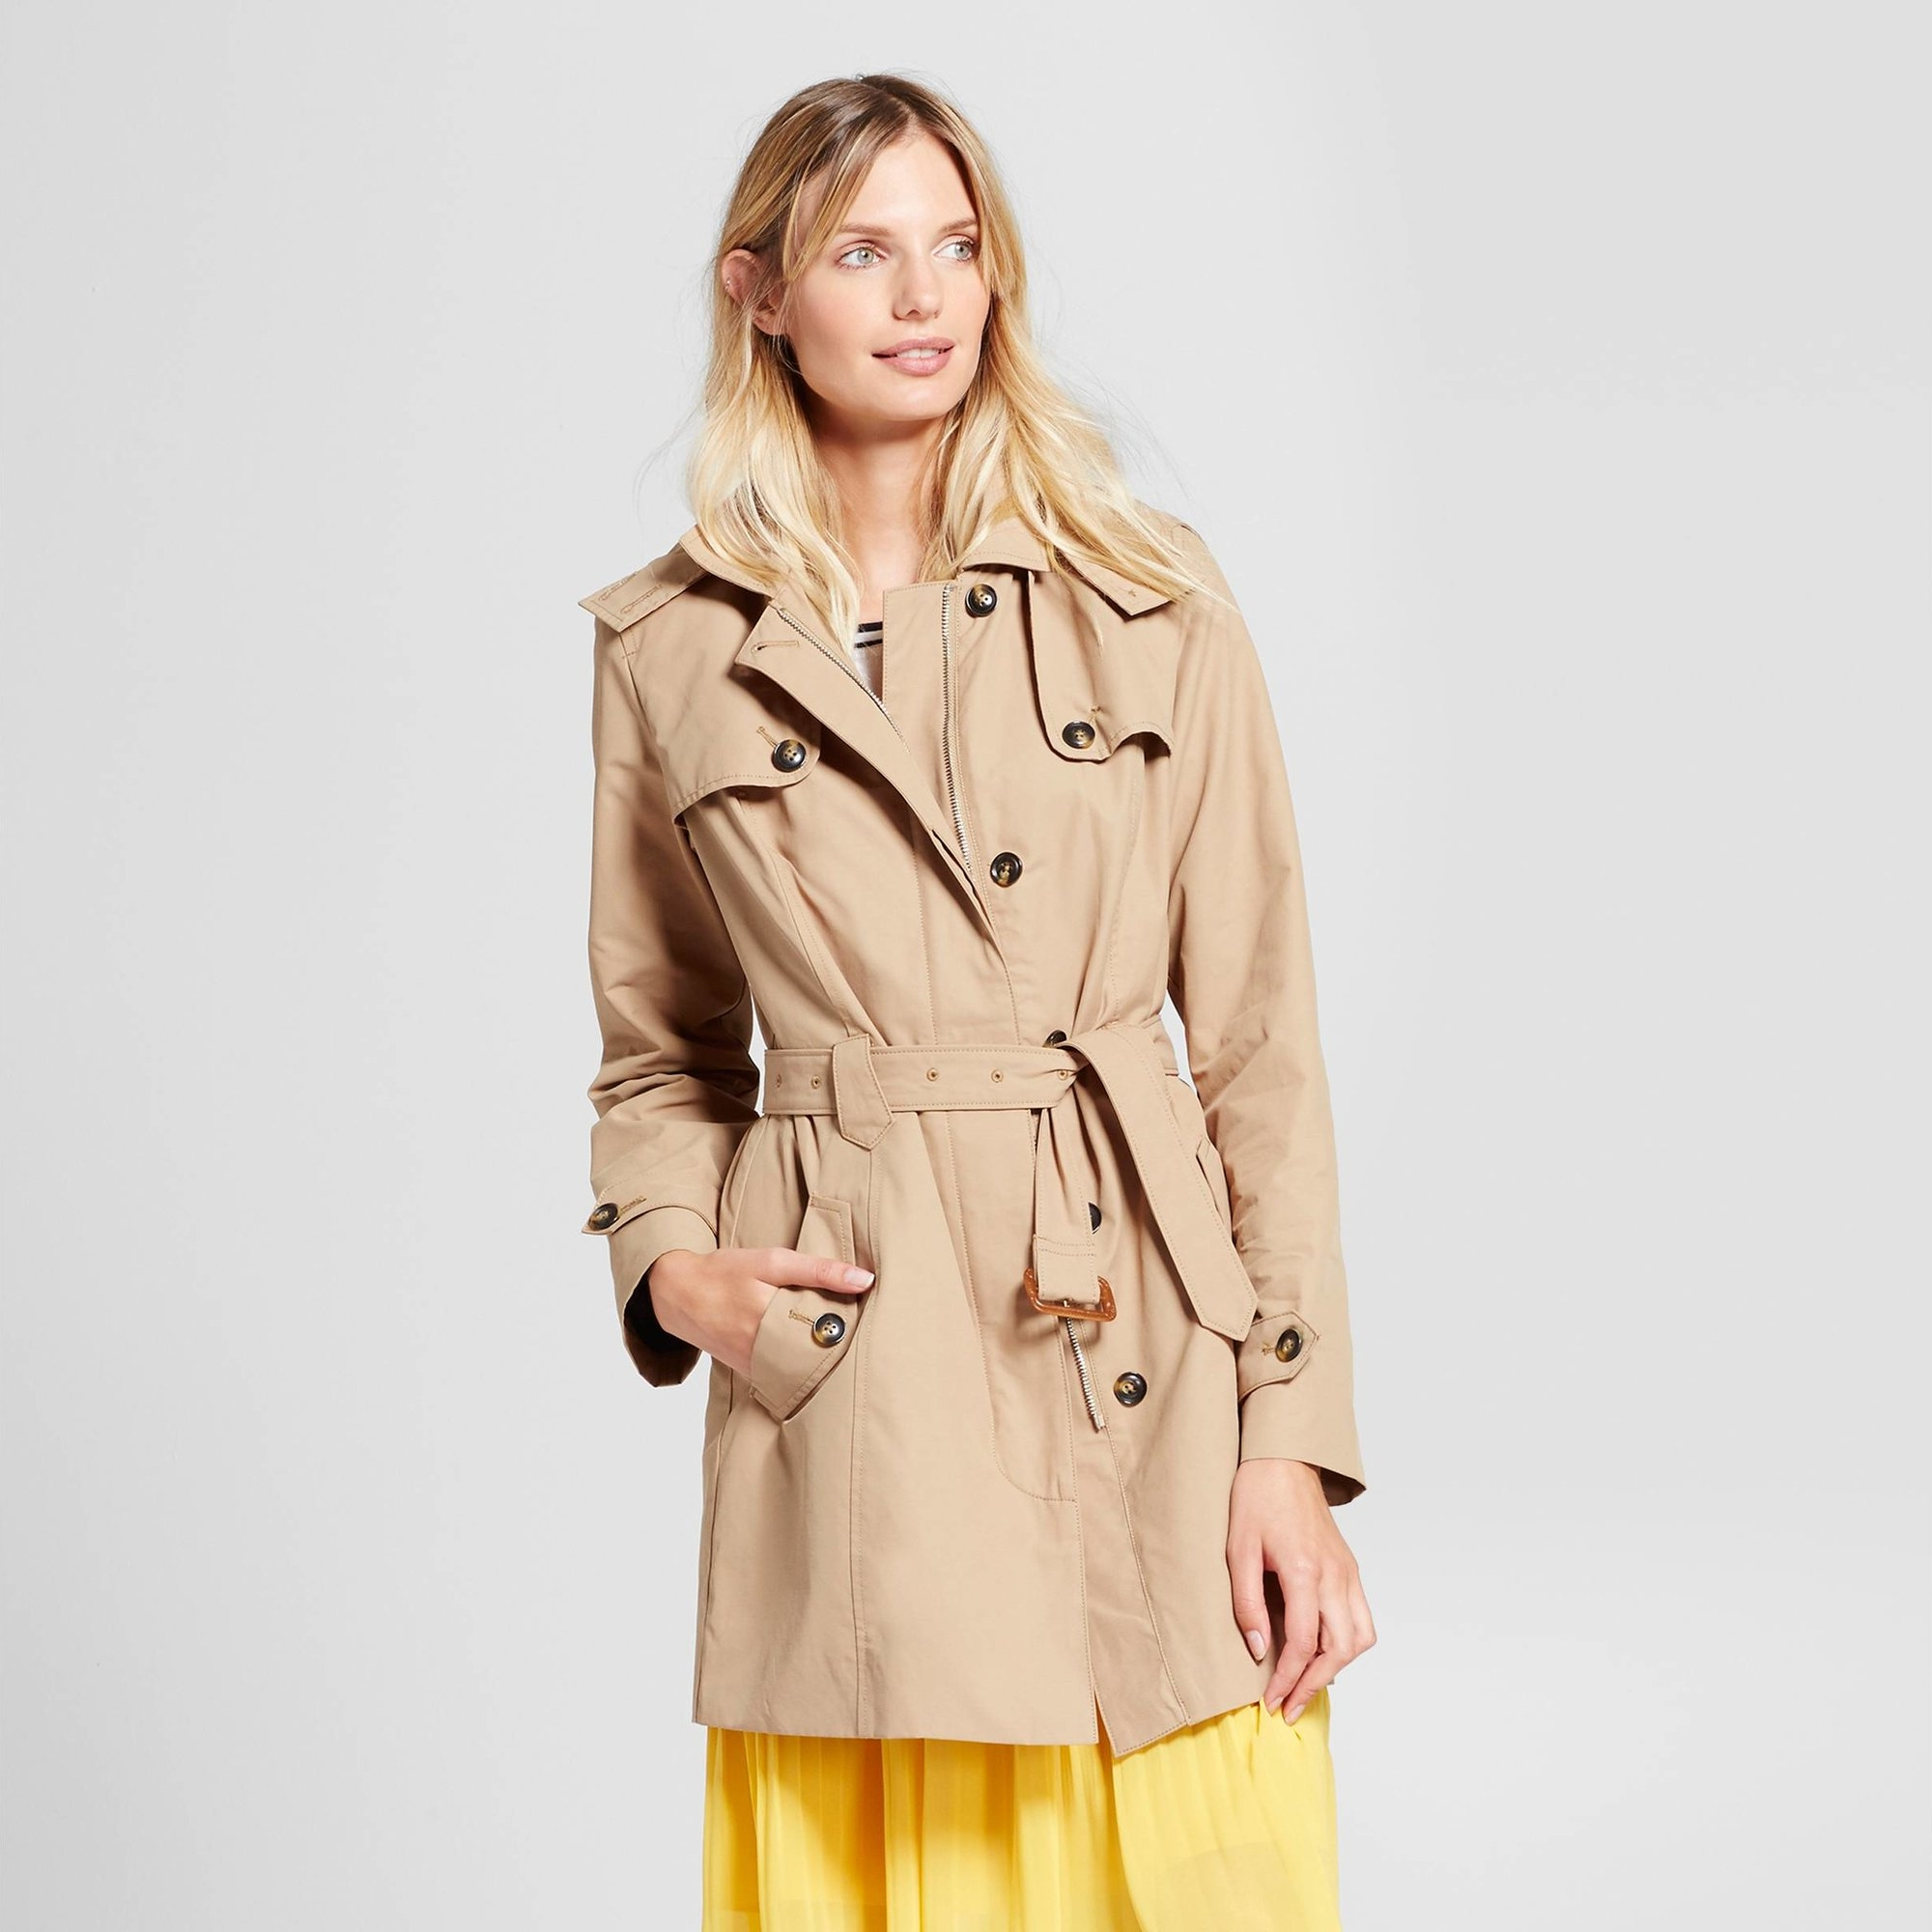 A New Day Hooded Trench Coat by Target